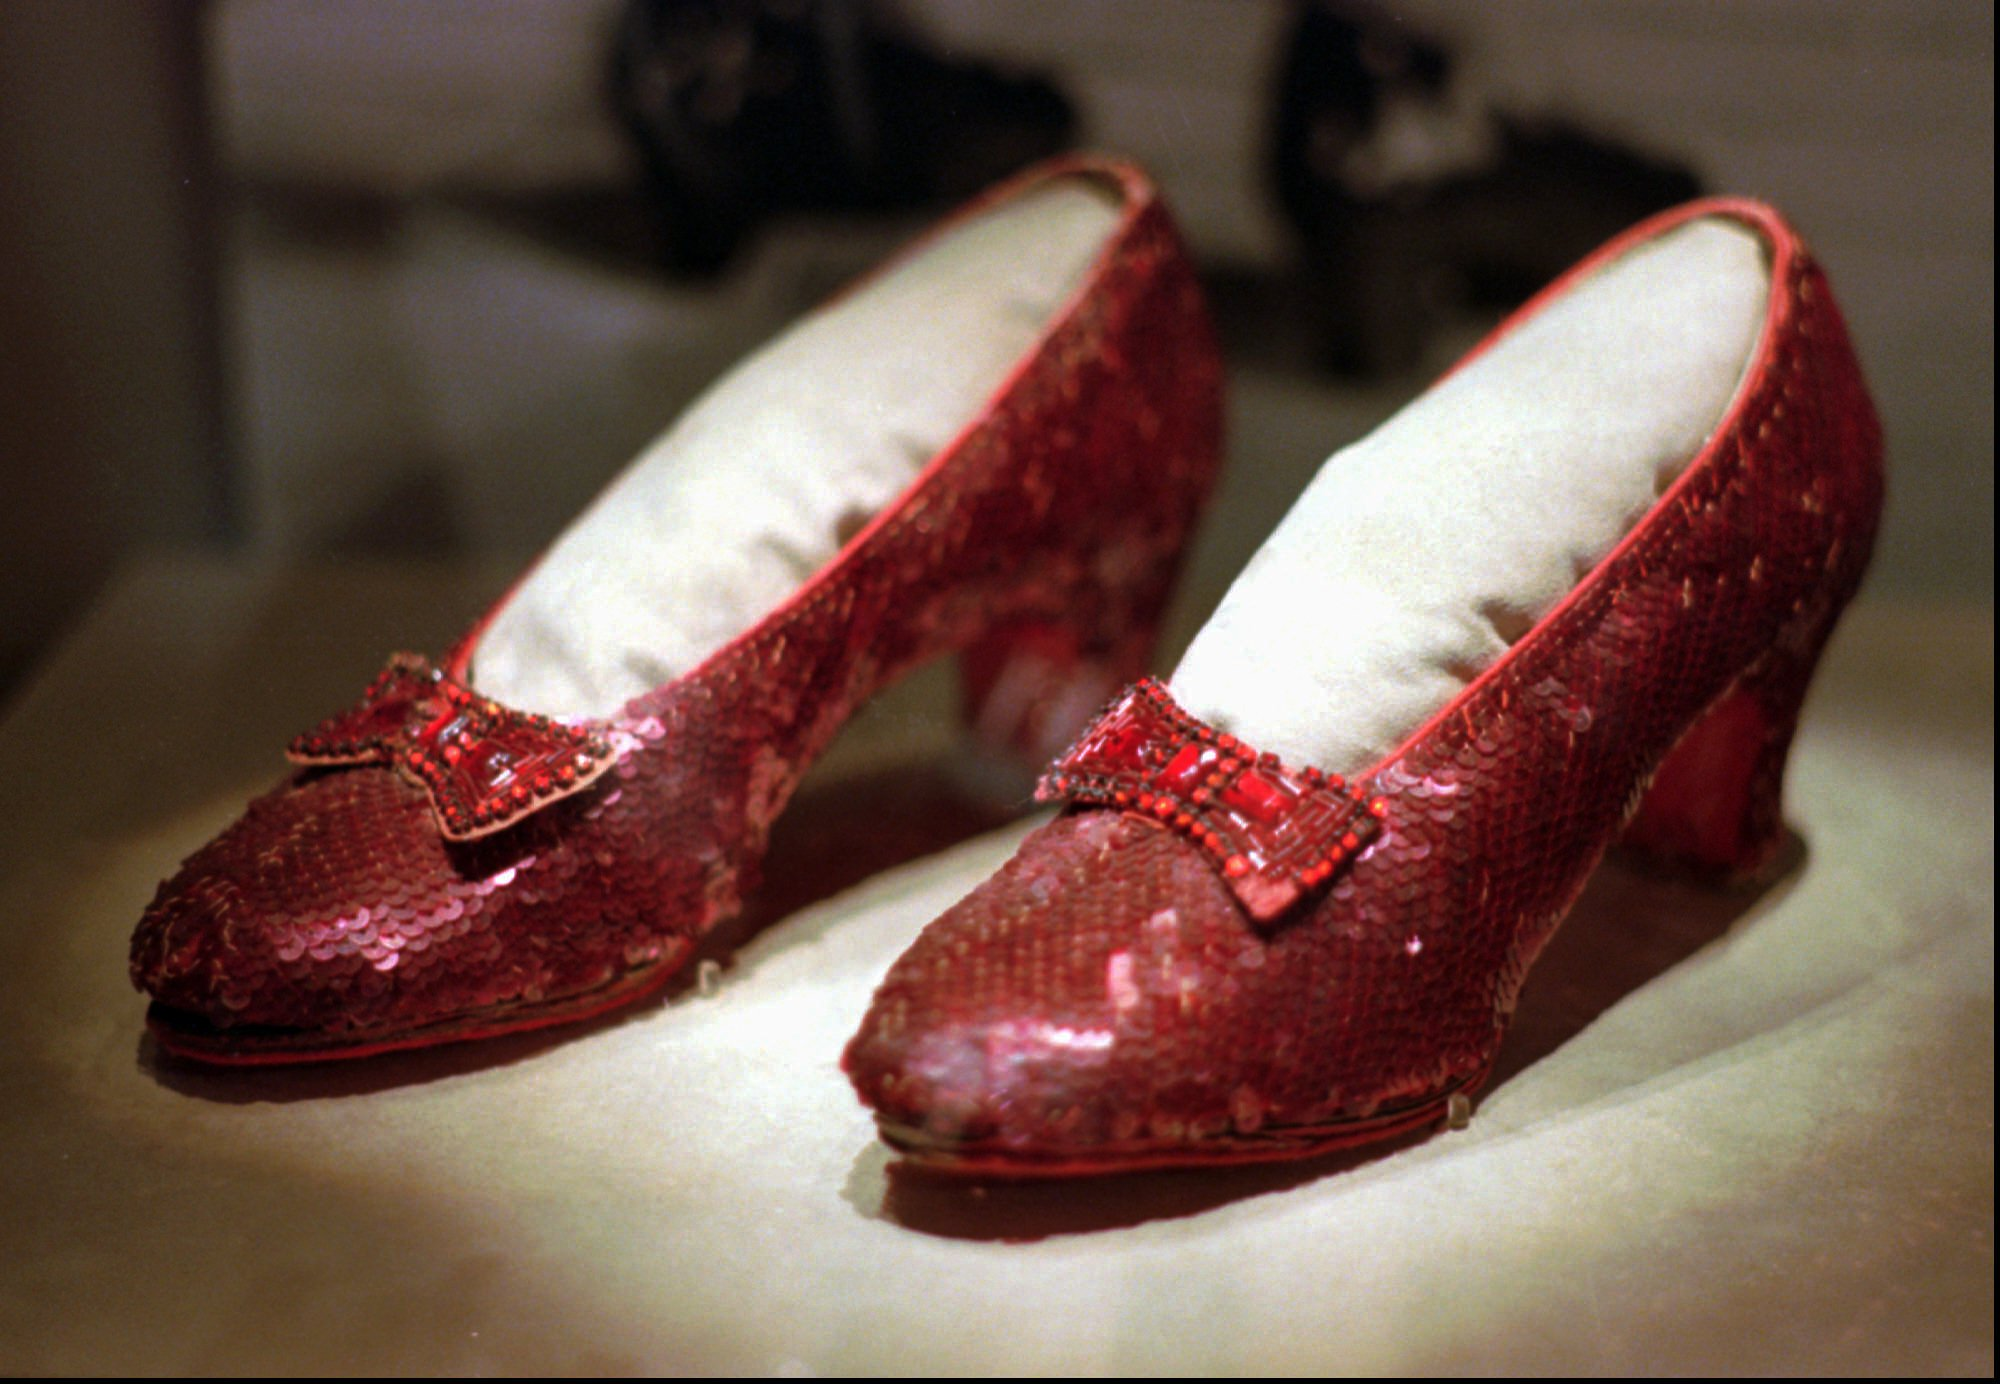 FILE - In this April 10, 1996 file photo, the ruby slippers worn by Judy Garland in the 1939 film  The Wizard of Oz  are shown on display during a media tour of the  America's Smithsonian  exhibition in Kansas City, Mo.   The ruby slippers are leaving the U.S.  on their first international journey to London's Victoria and Albert Museum.  (AP Photo/Ed Zurga)